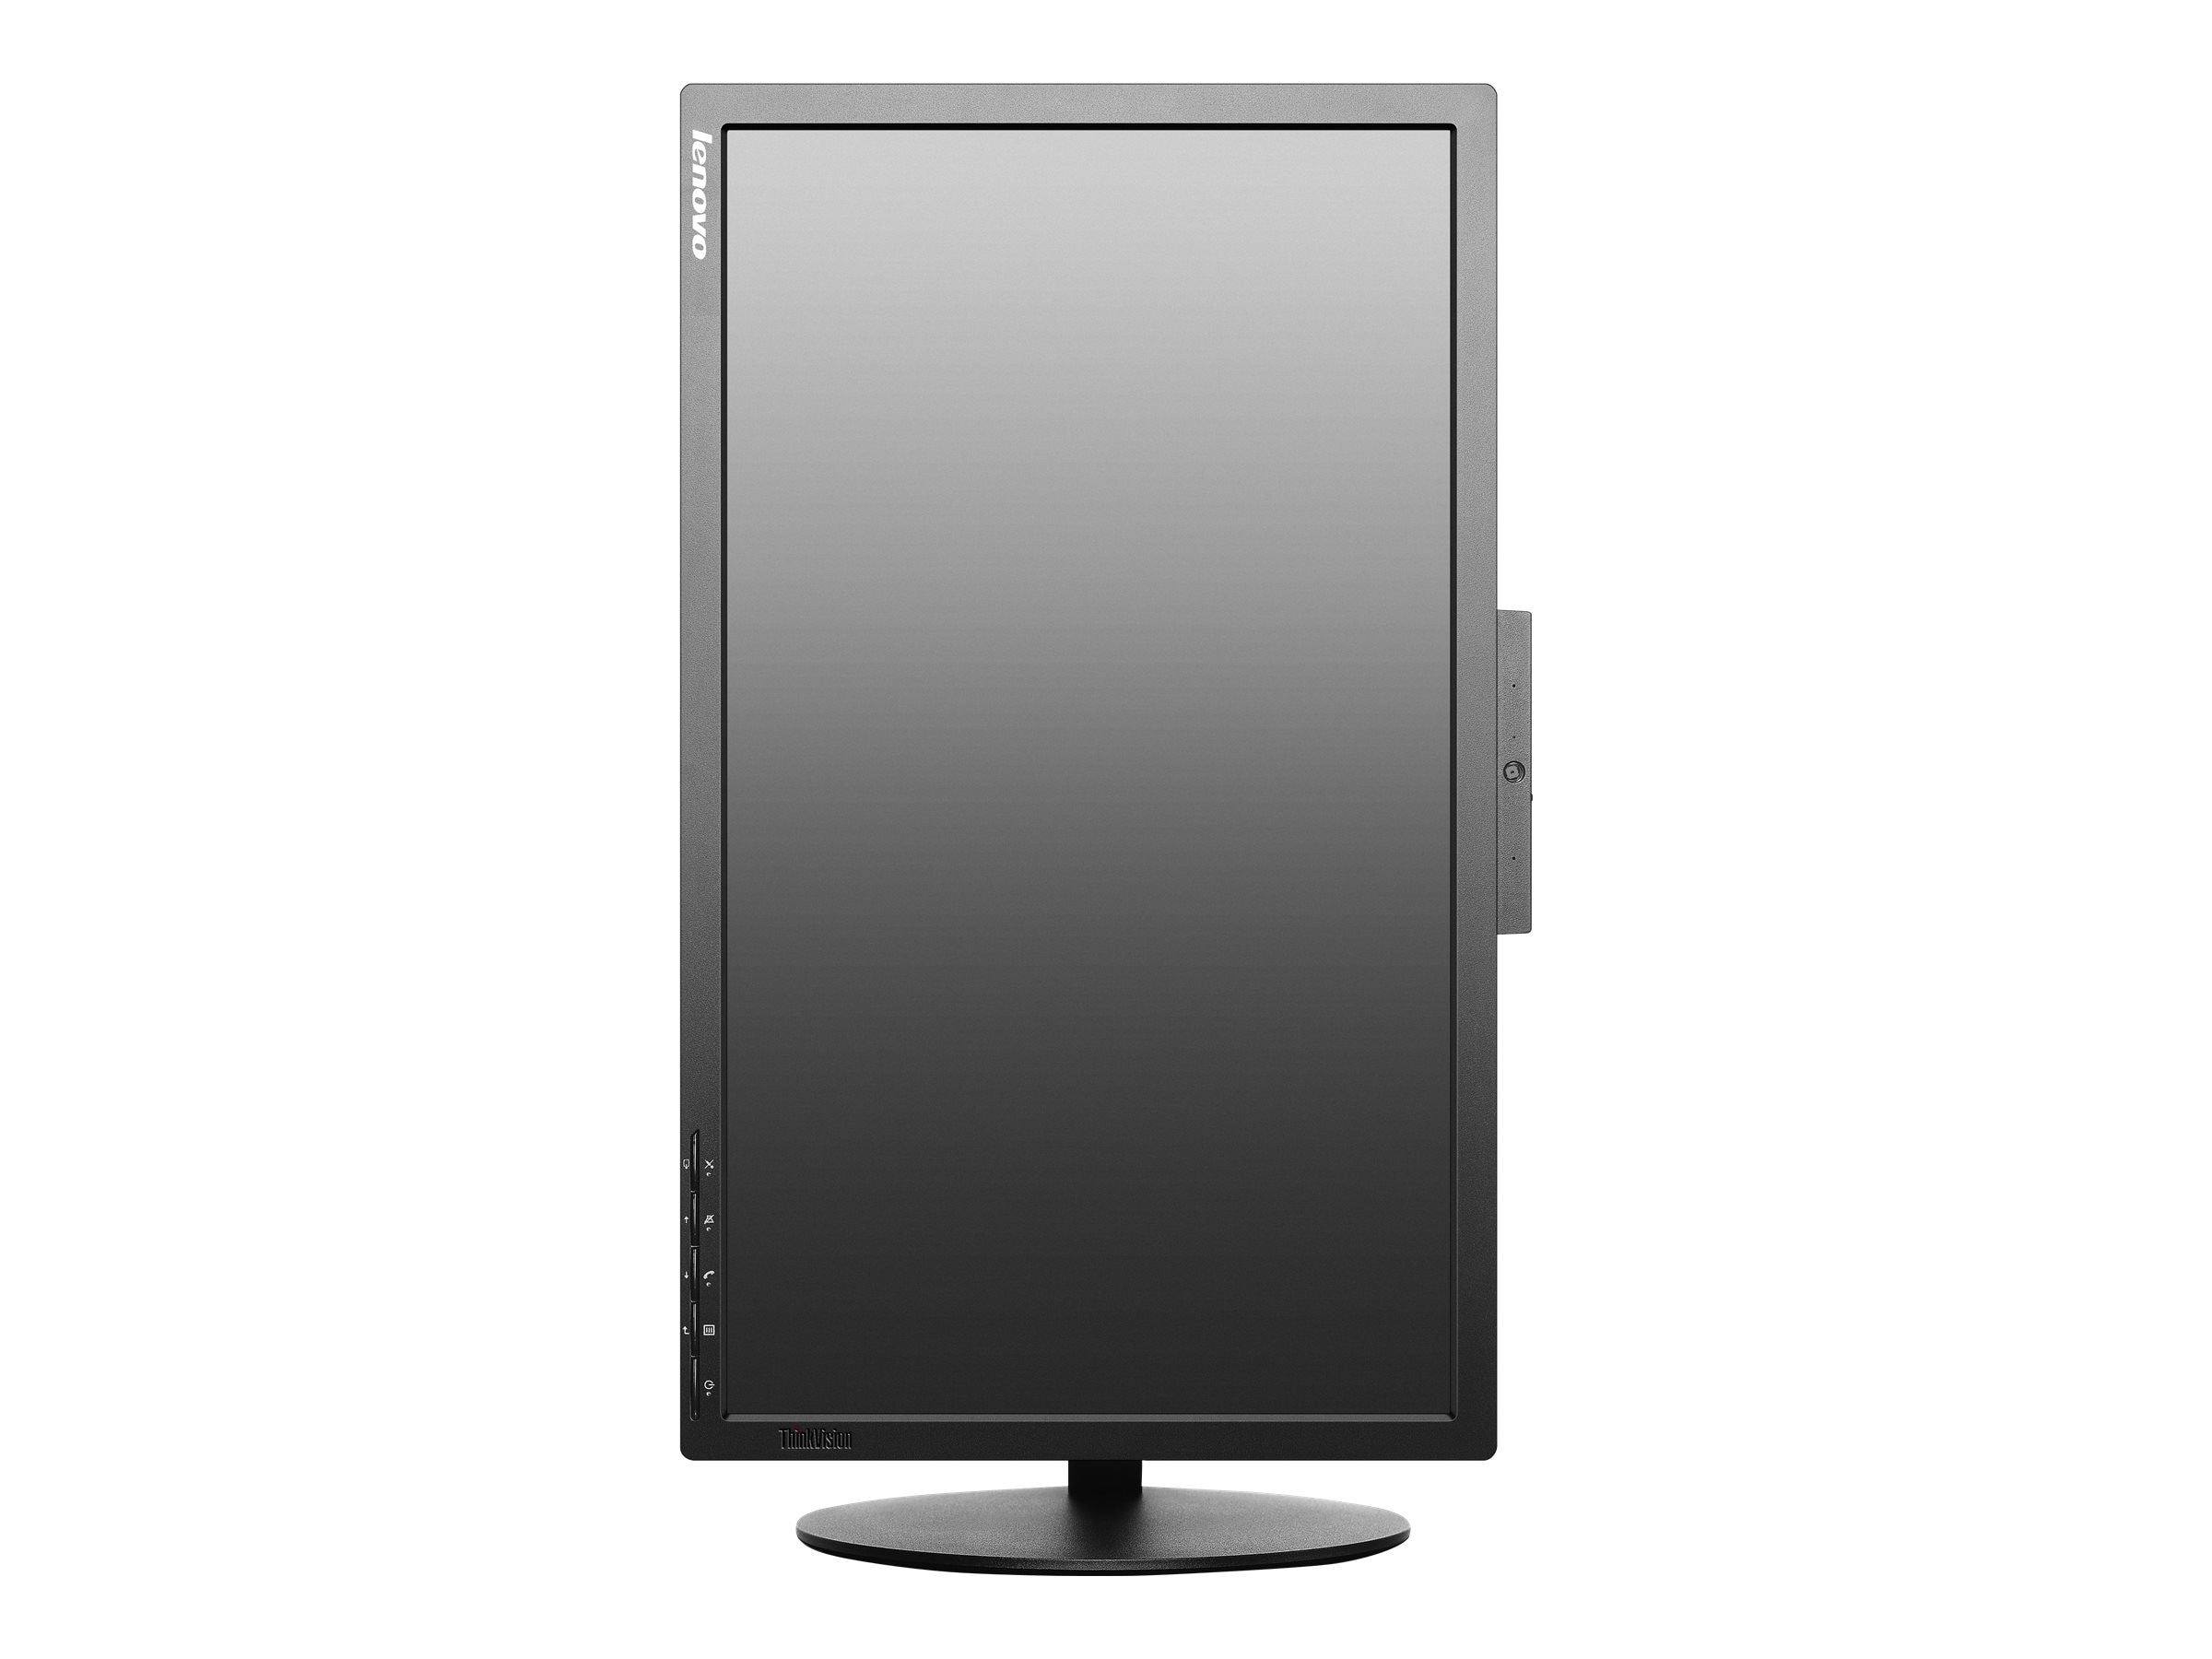 Lenovo 21.5 T2224Z Full HD LED-LCD Monitor with Webcam, Black, 60CBMAR6US